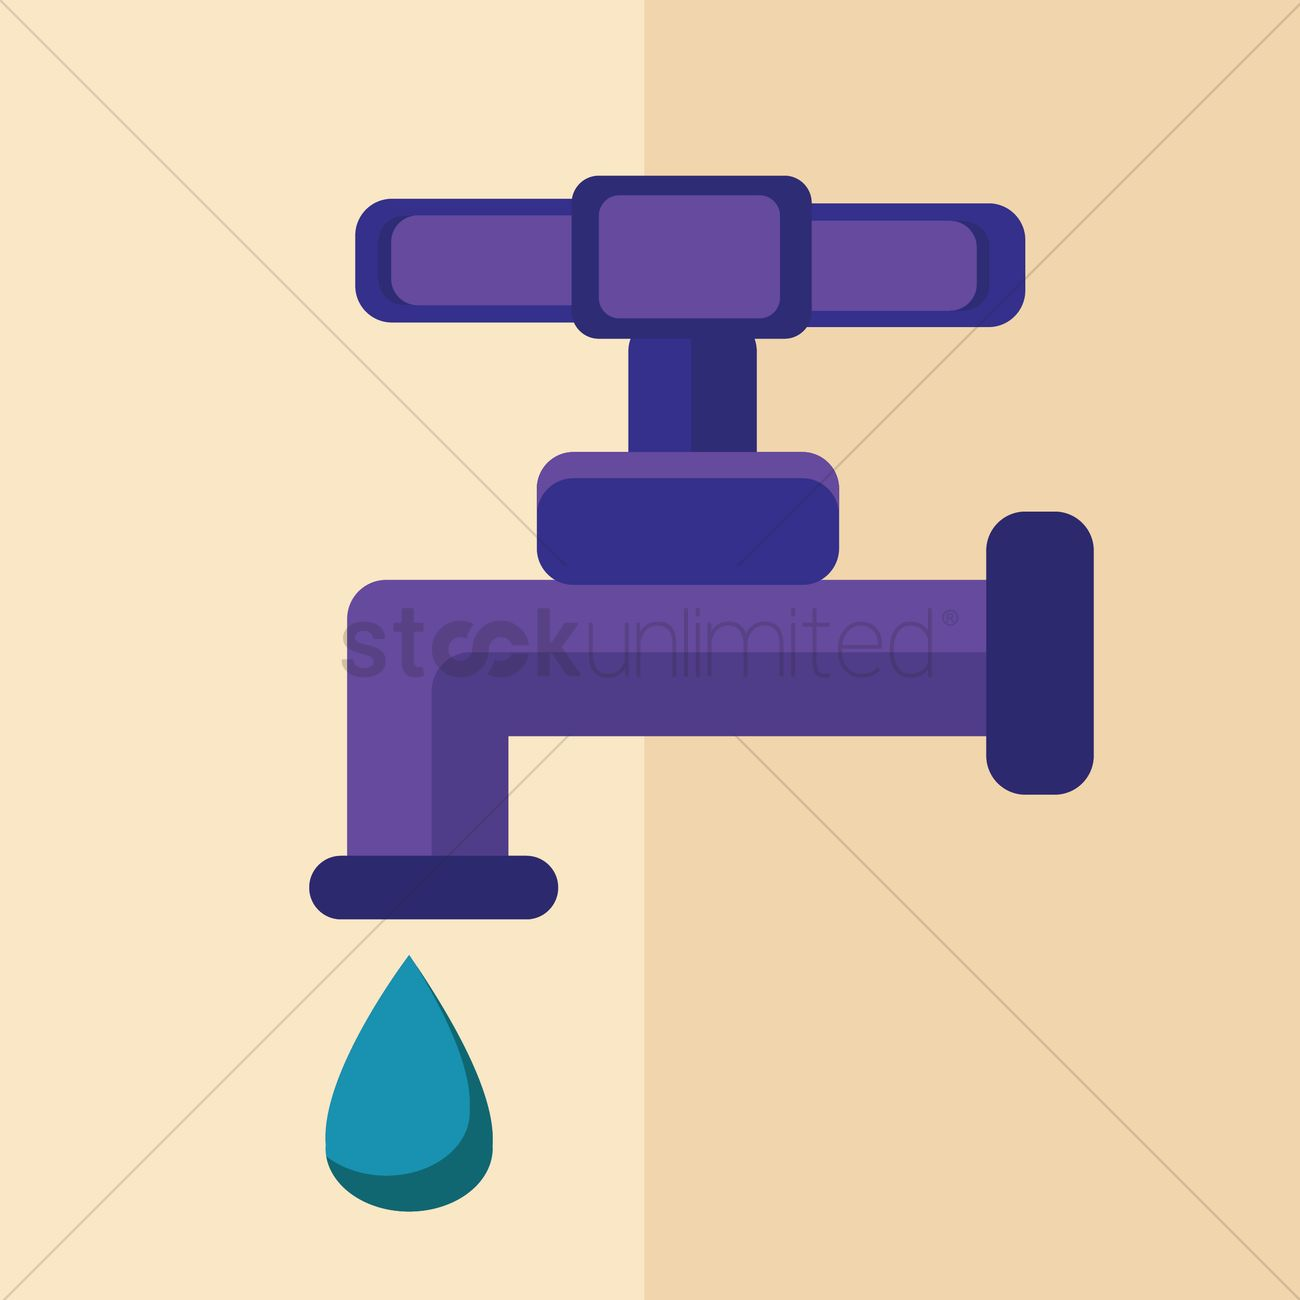 Water faucet Vector Image - 1312902 | StockUnlimited